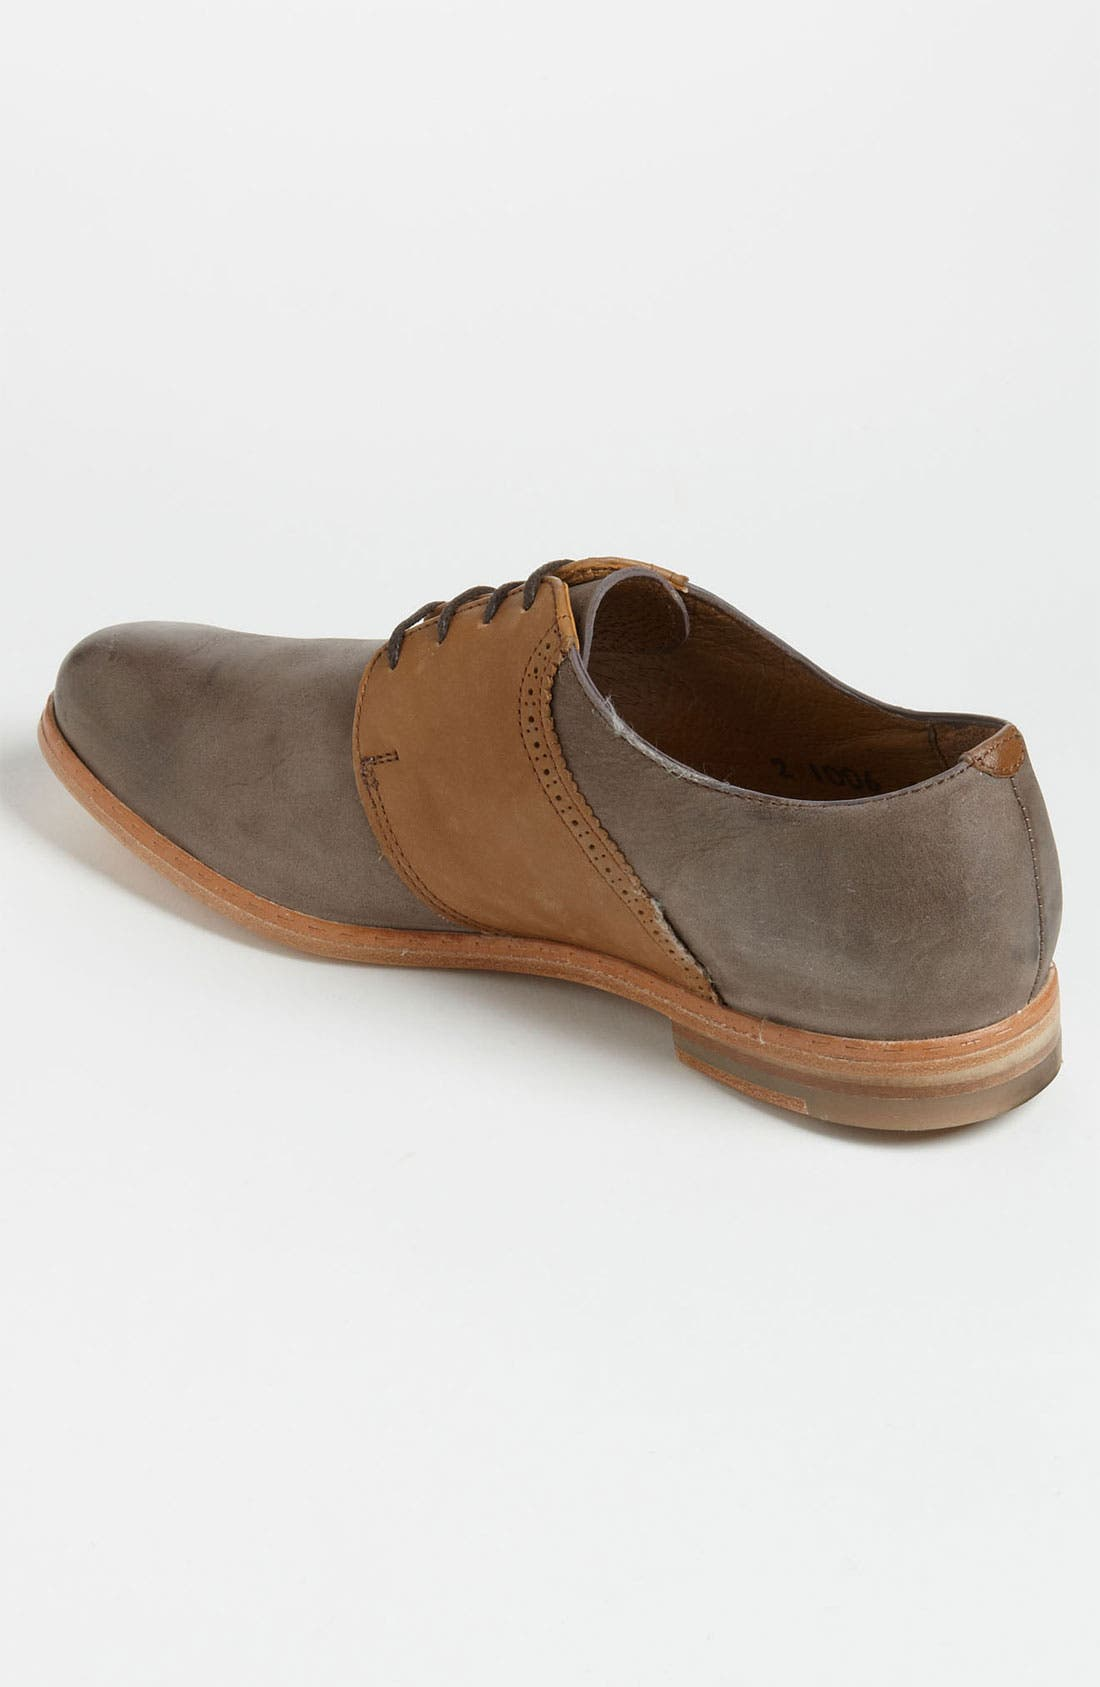 Alternate Image 2  - J.D. Fisk 'Mosimo' Saddle Shoe